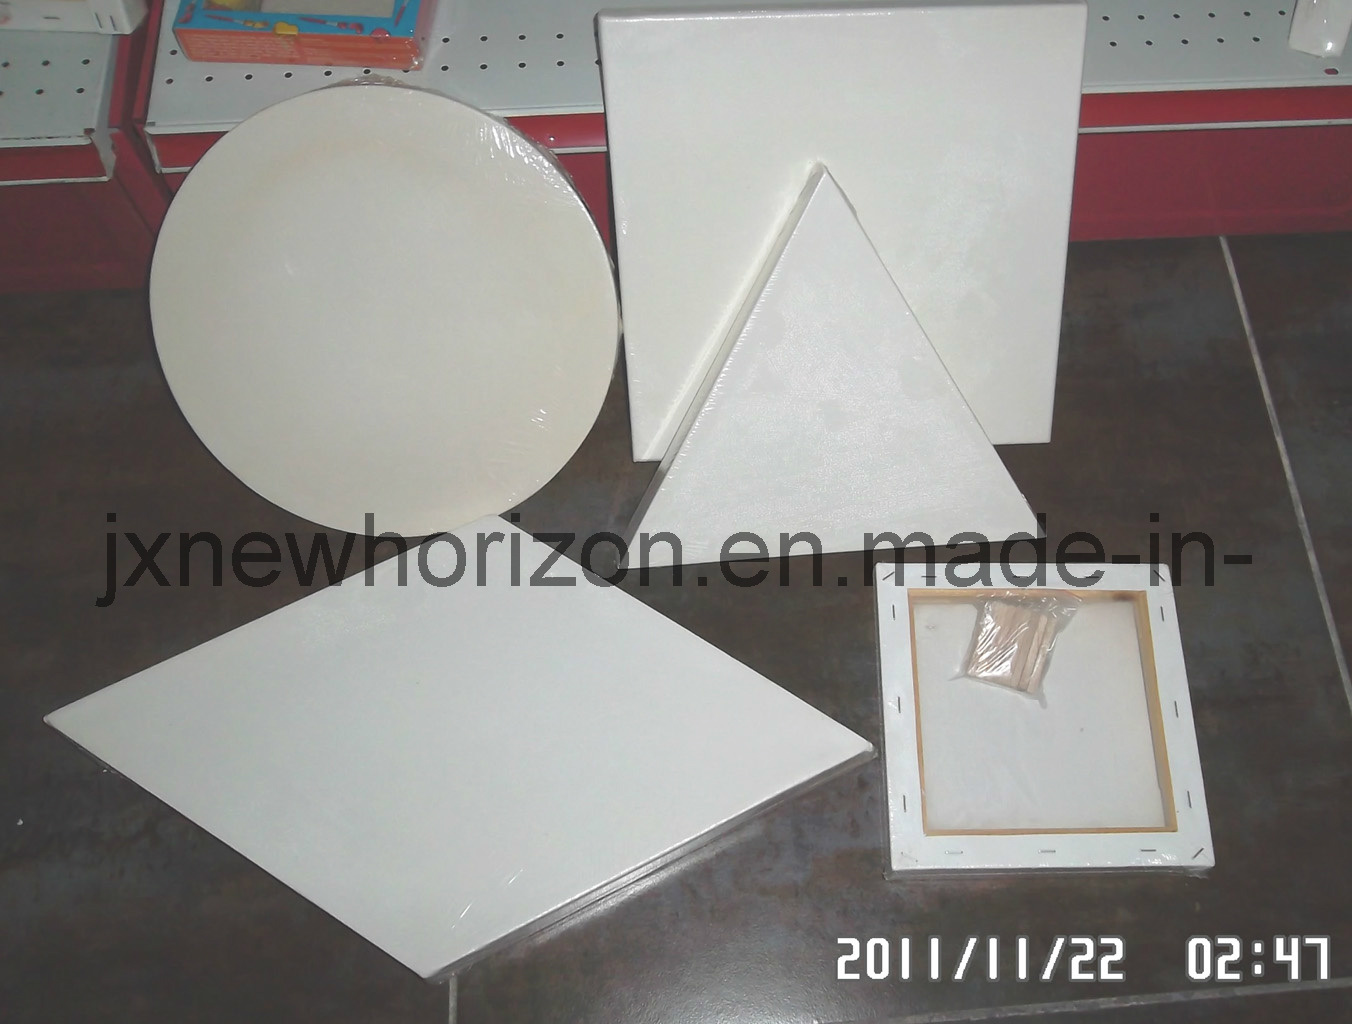 Irregular Shape Streched Canvas